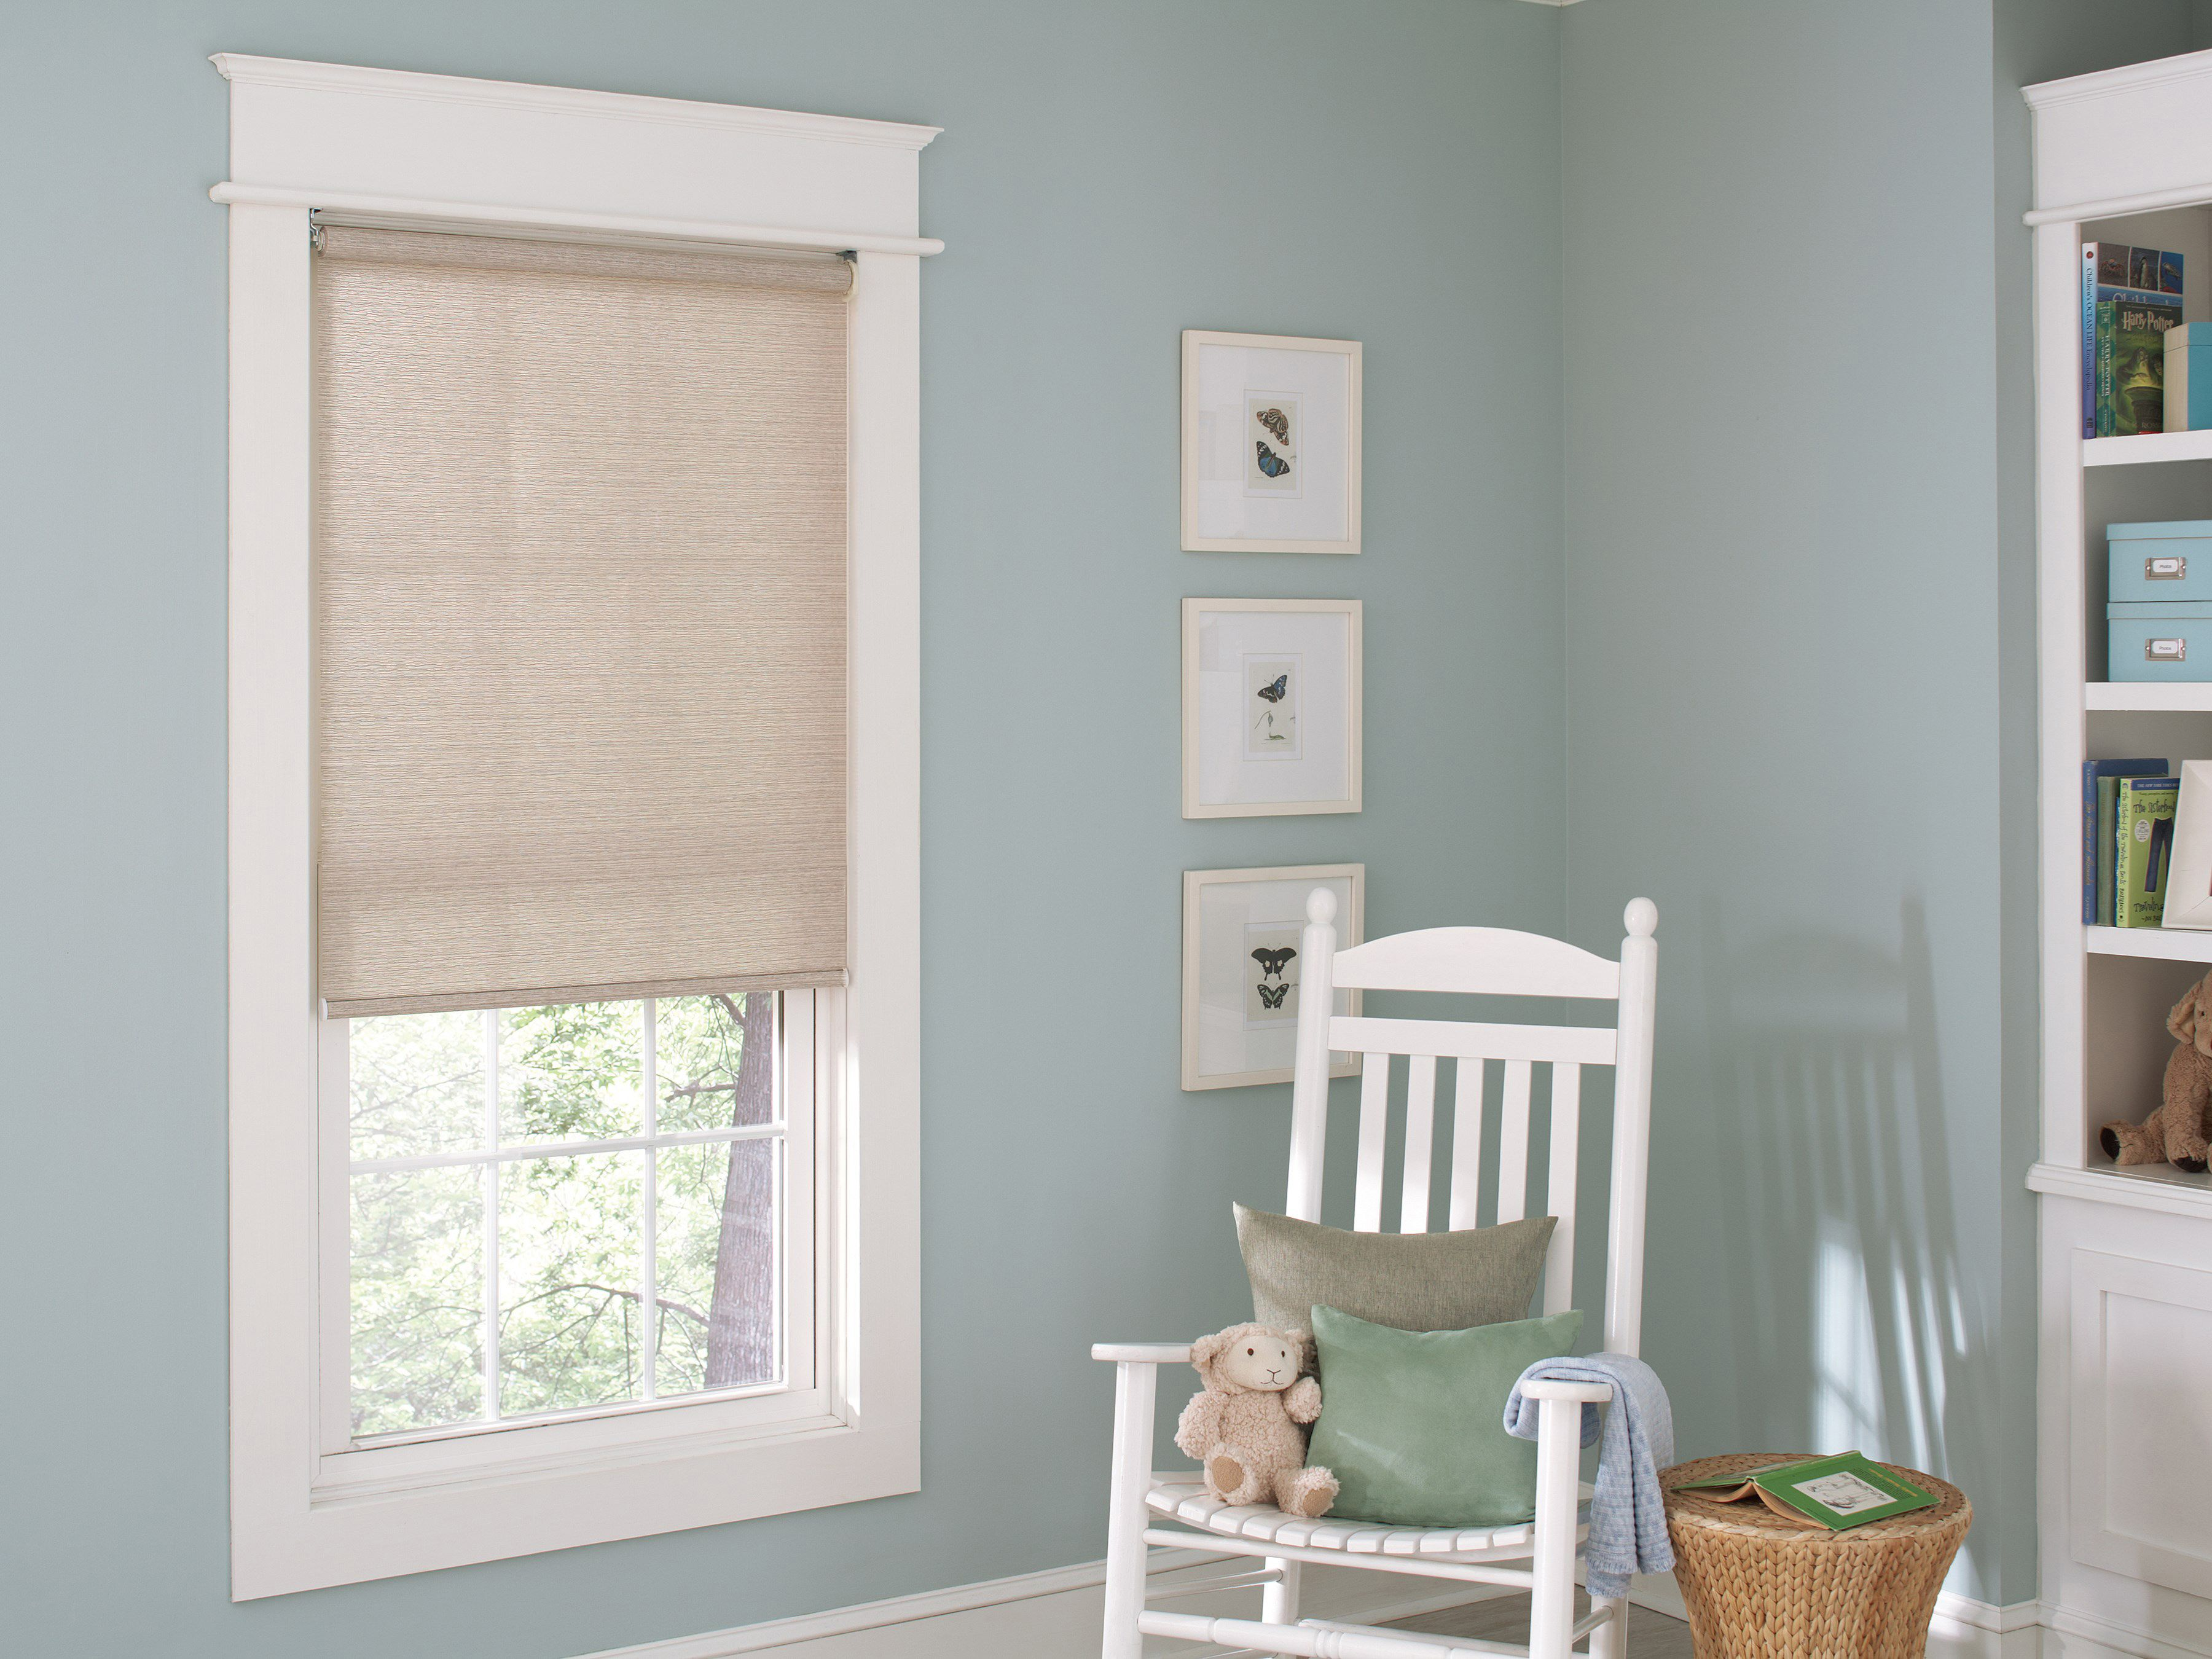 Making Window Treatments Safer For Homes With Infants Children And Pets Is One Of Our Top P Child Safe Window Treatments Kids Window Treatments Budget Blinds